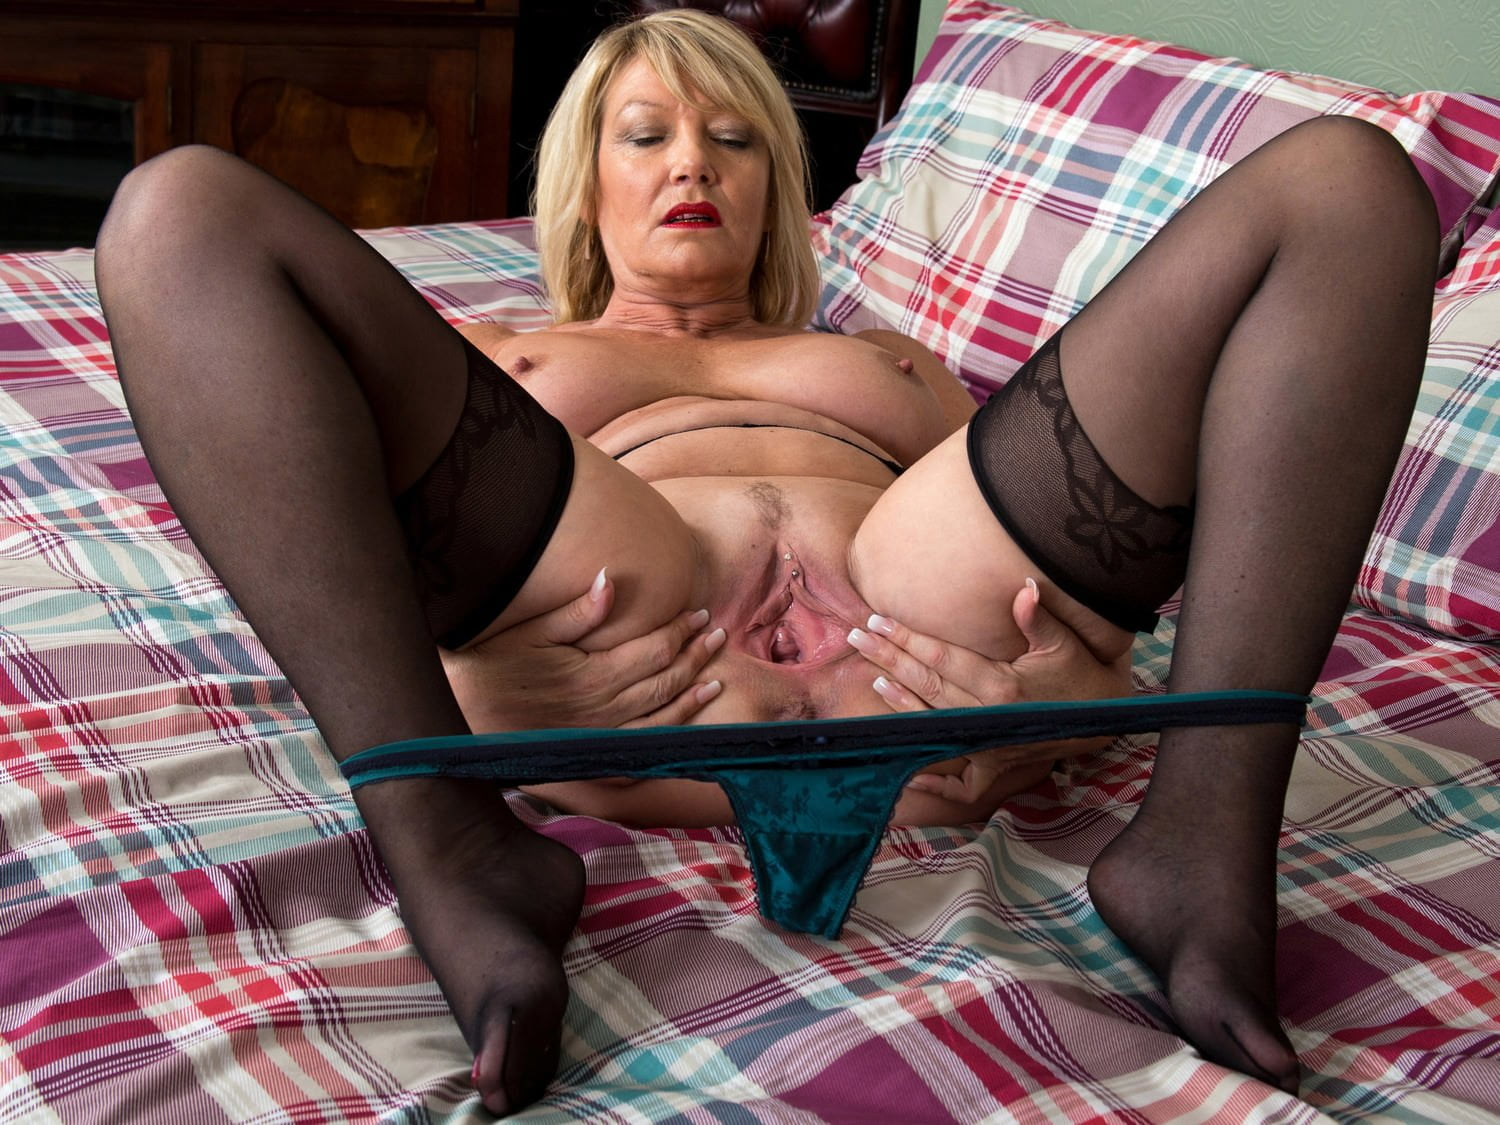 54 Year Old British Mom, Free Free British Hd Porn 5F-4160